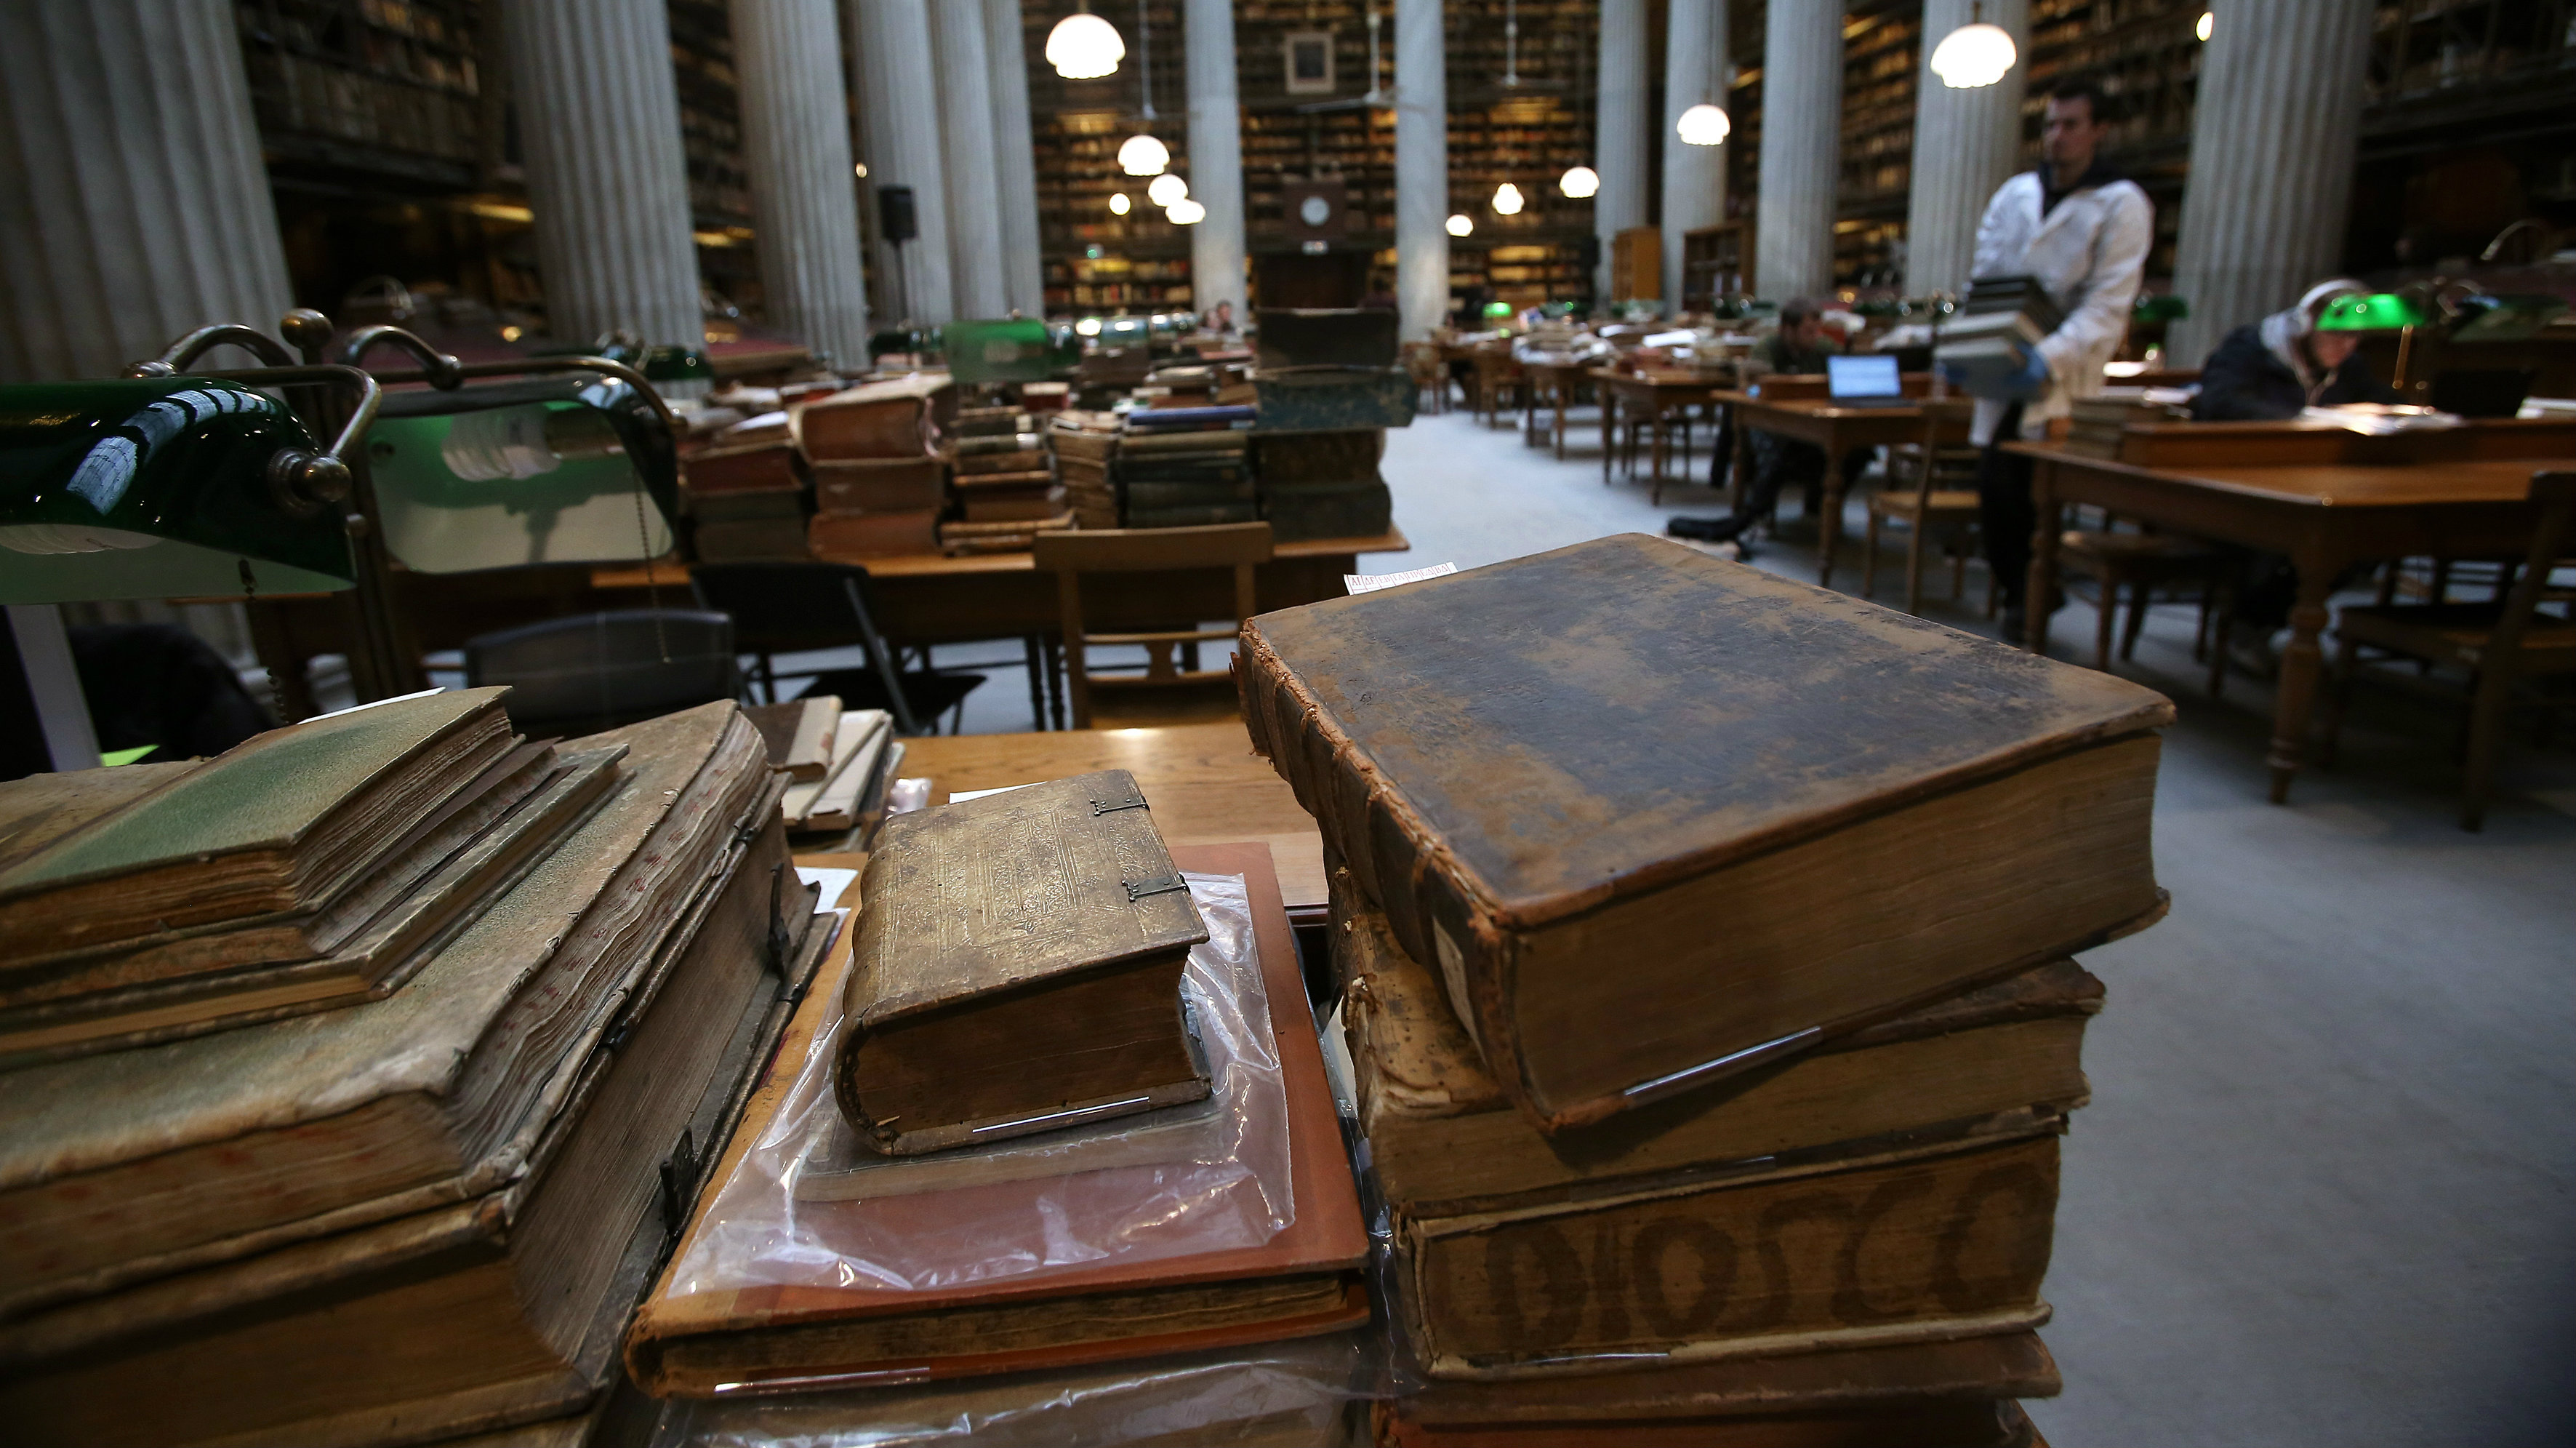 Books are piled up in National Library in Greece